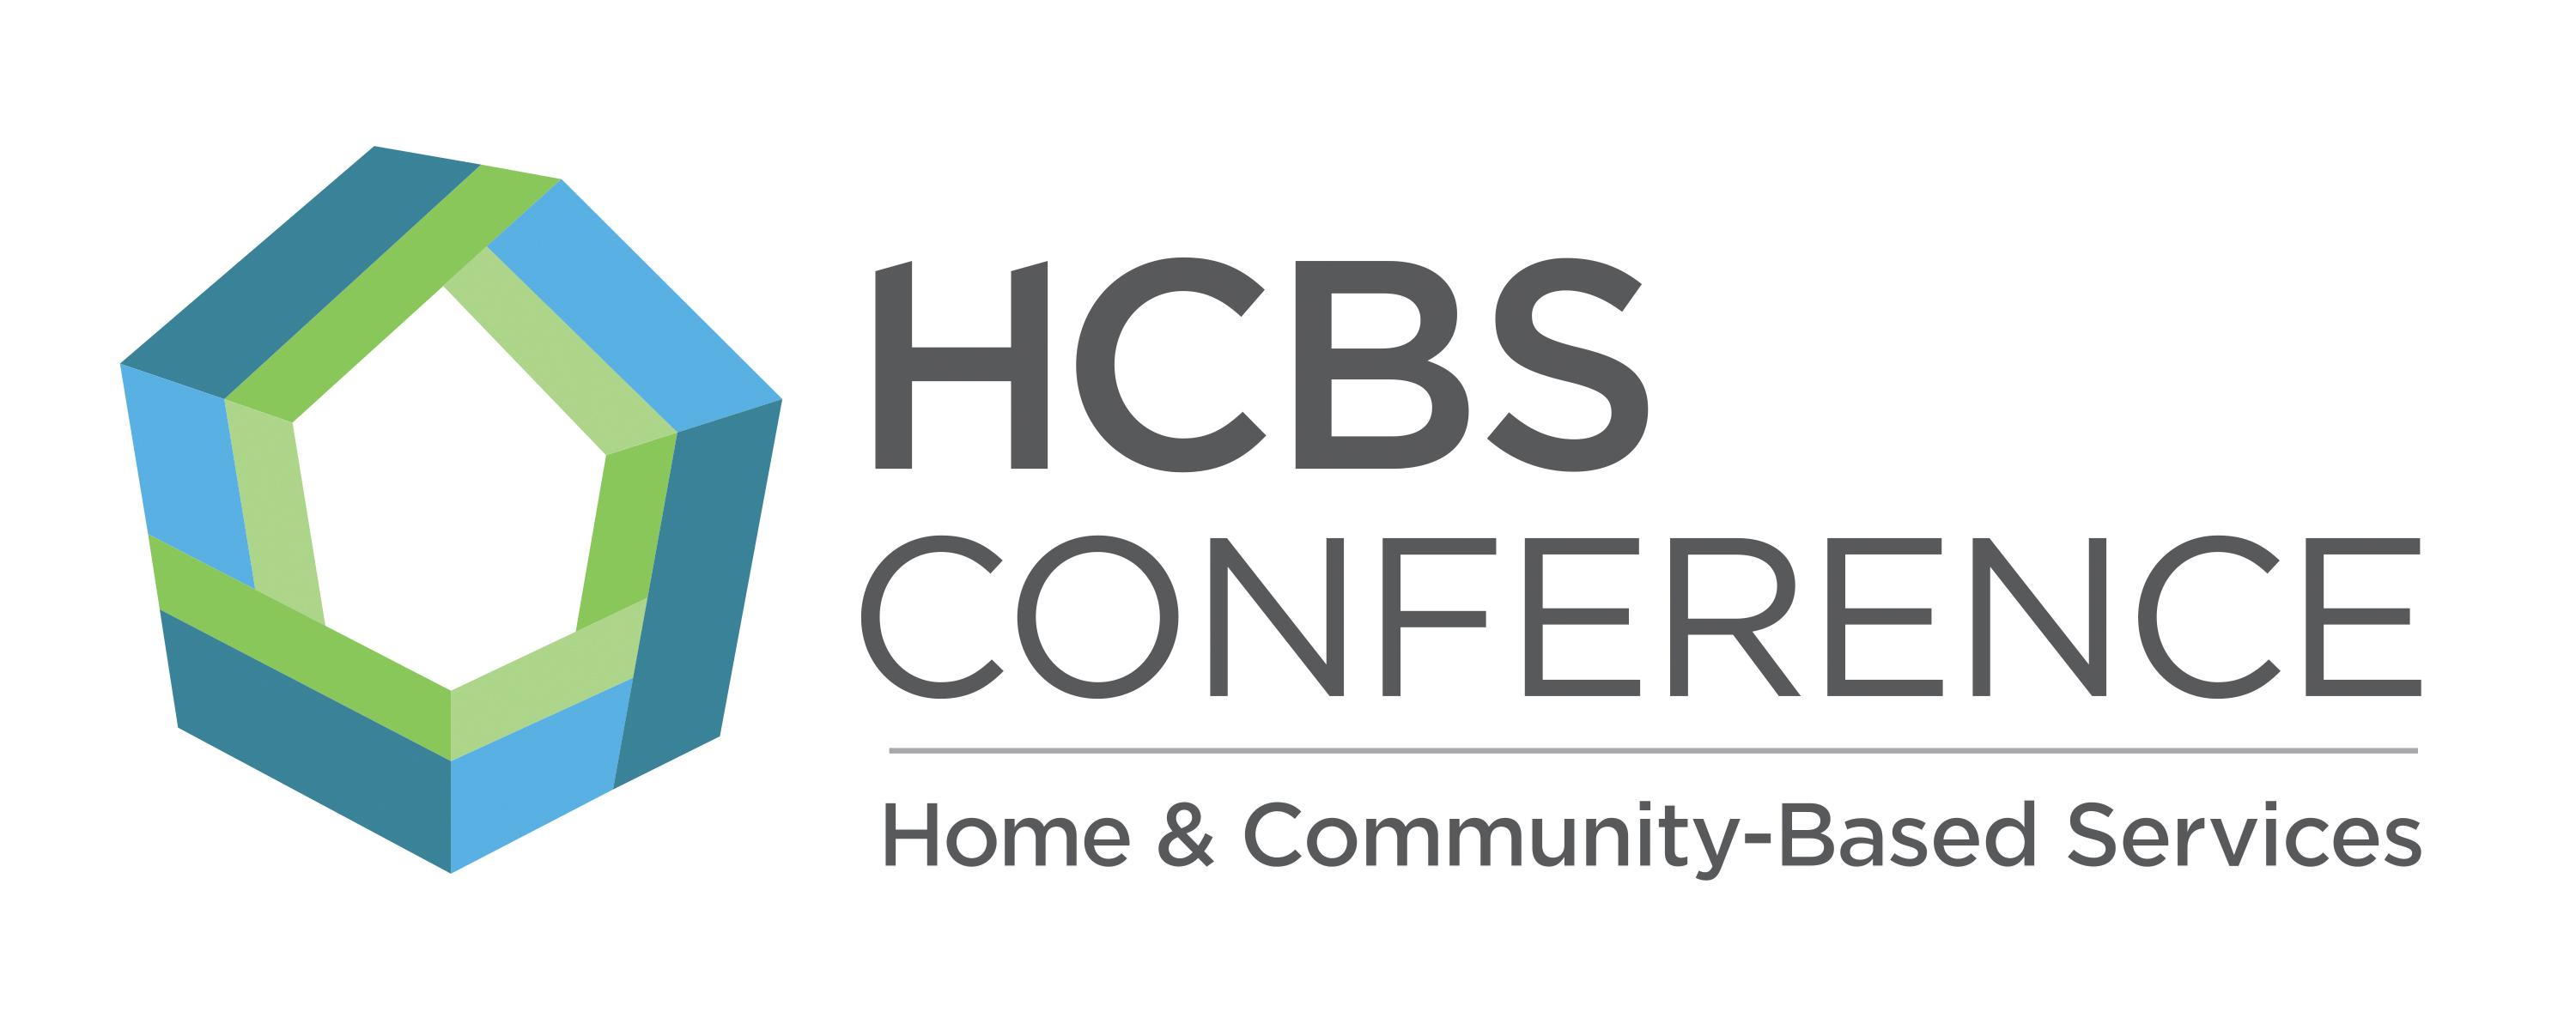 HCBS Conference Logo